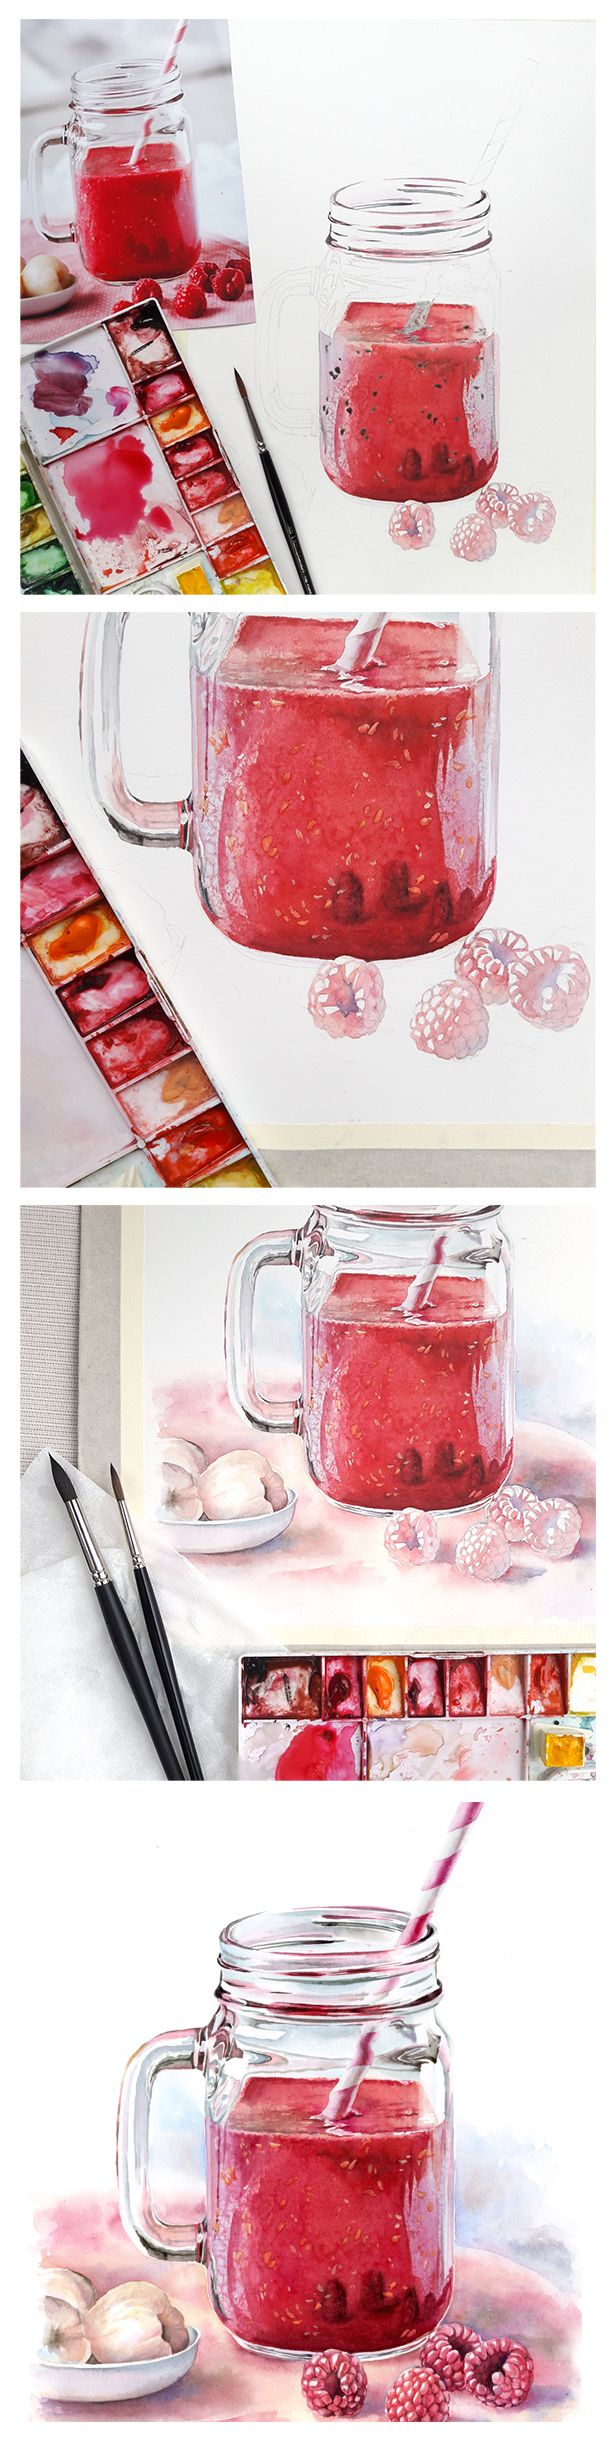 Watercolor tutorial - Food illustration by Kateryna Savchenko